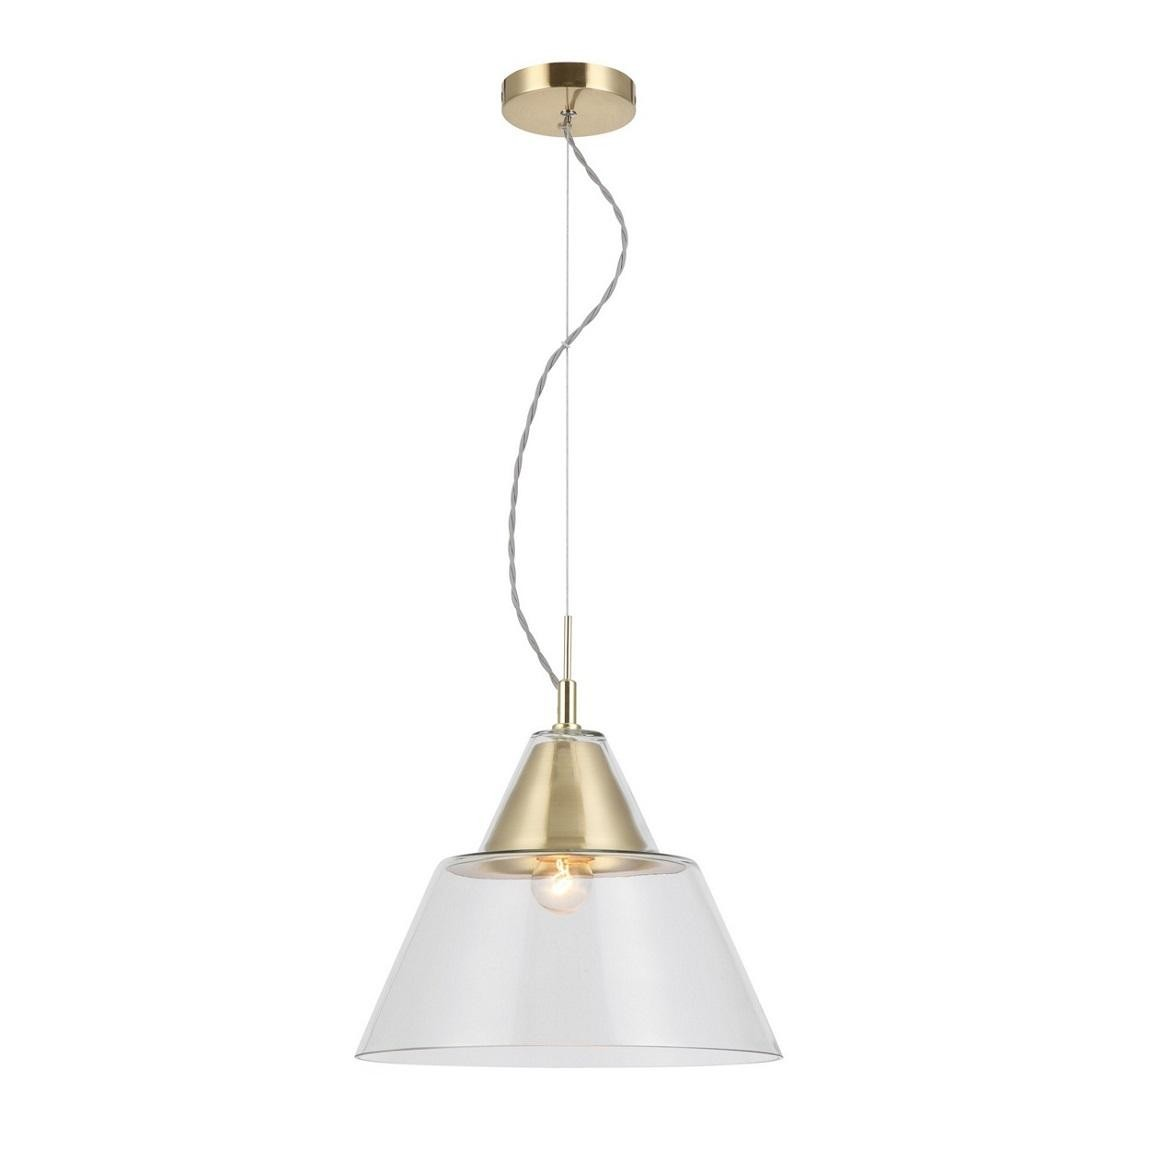 Debenhams Home Collection 'Blake' Pendant Ceiling Light